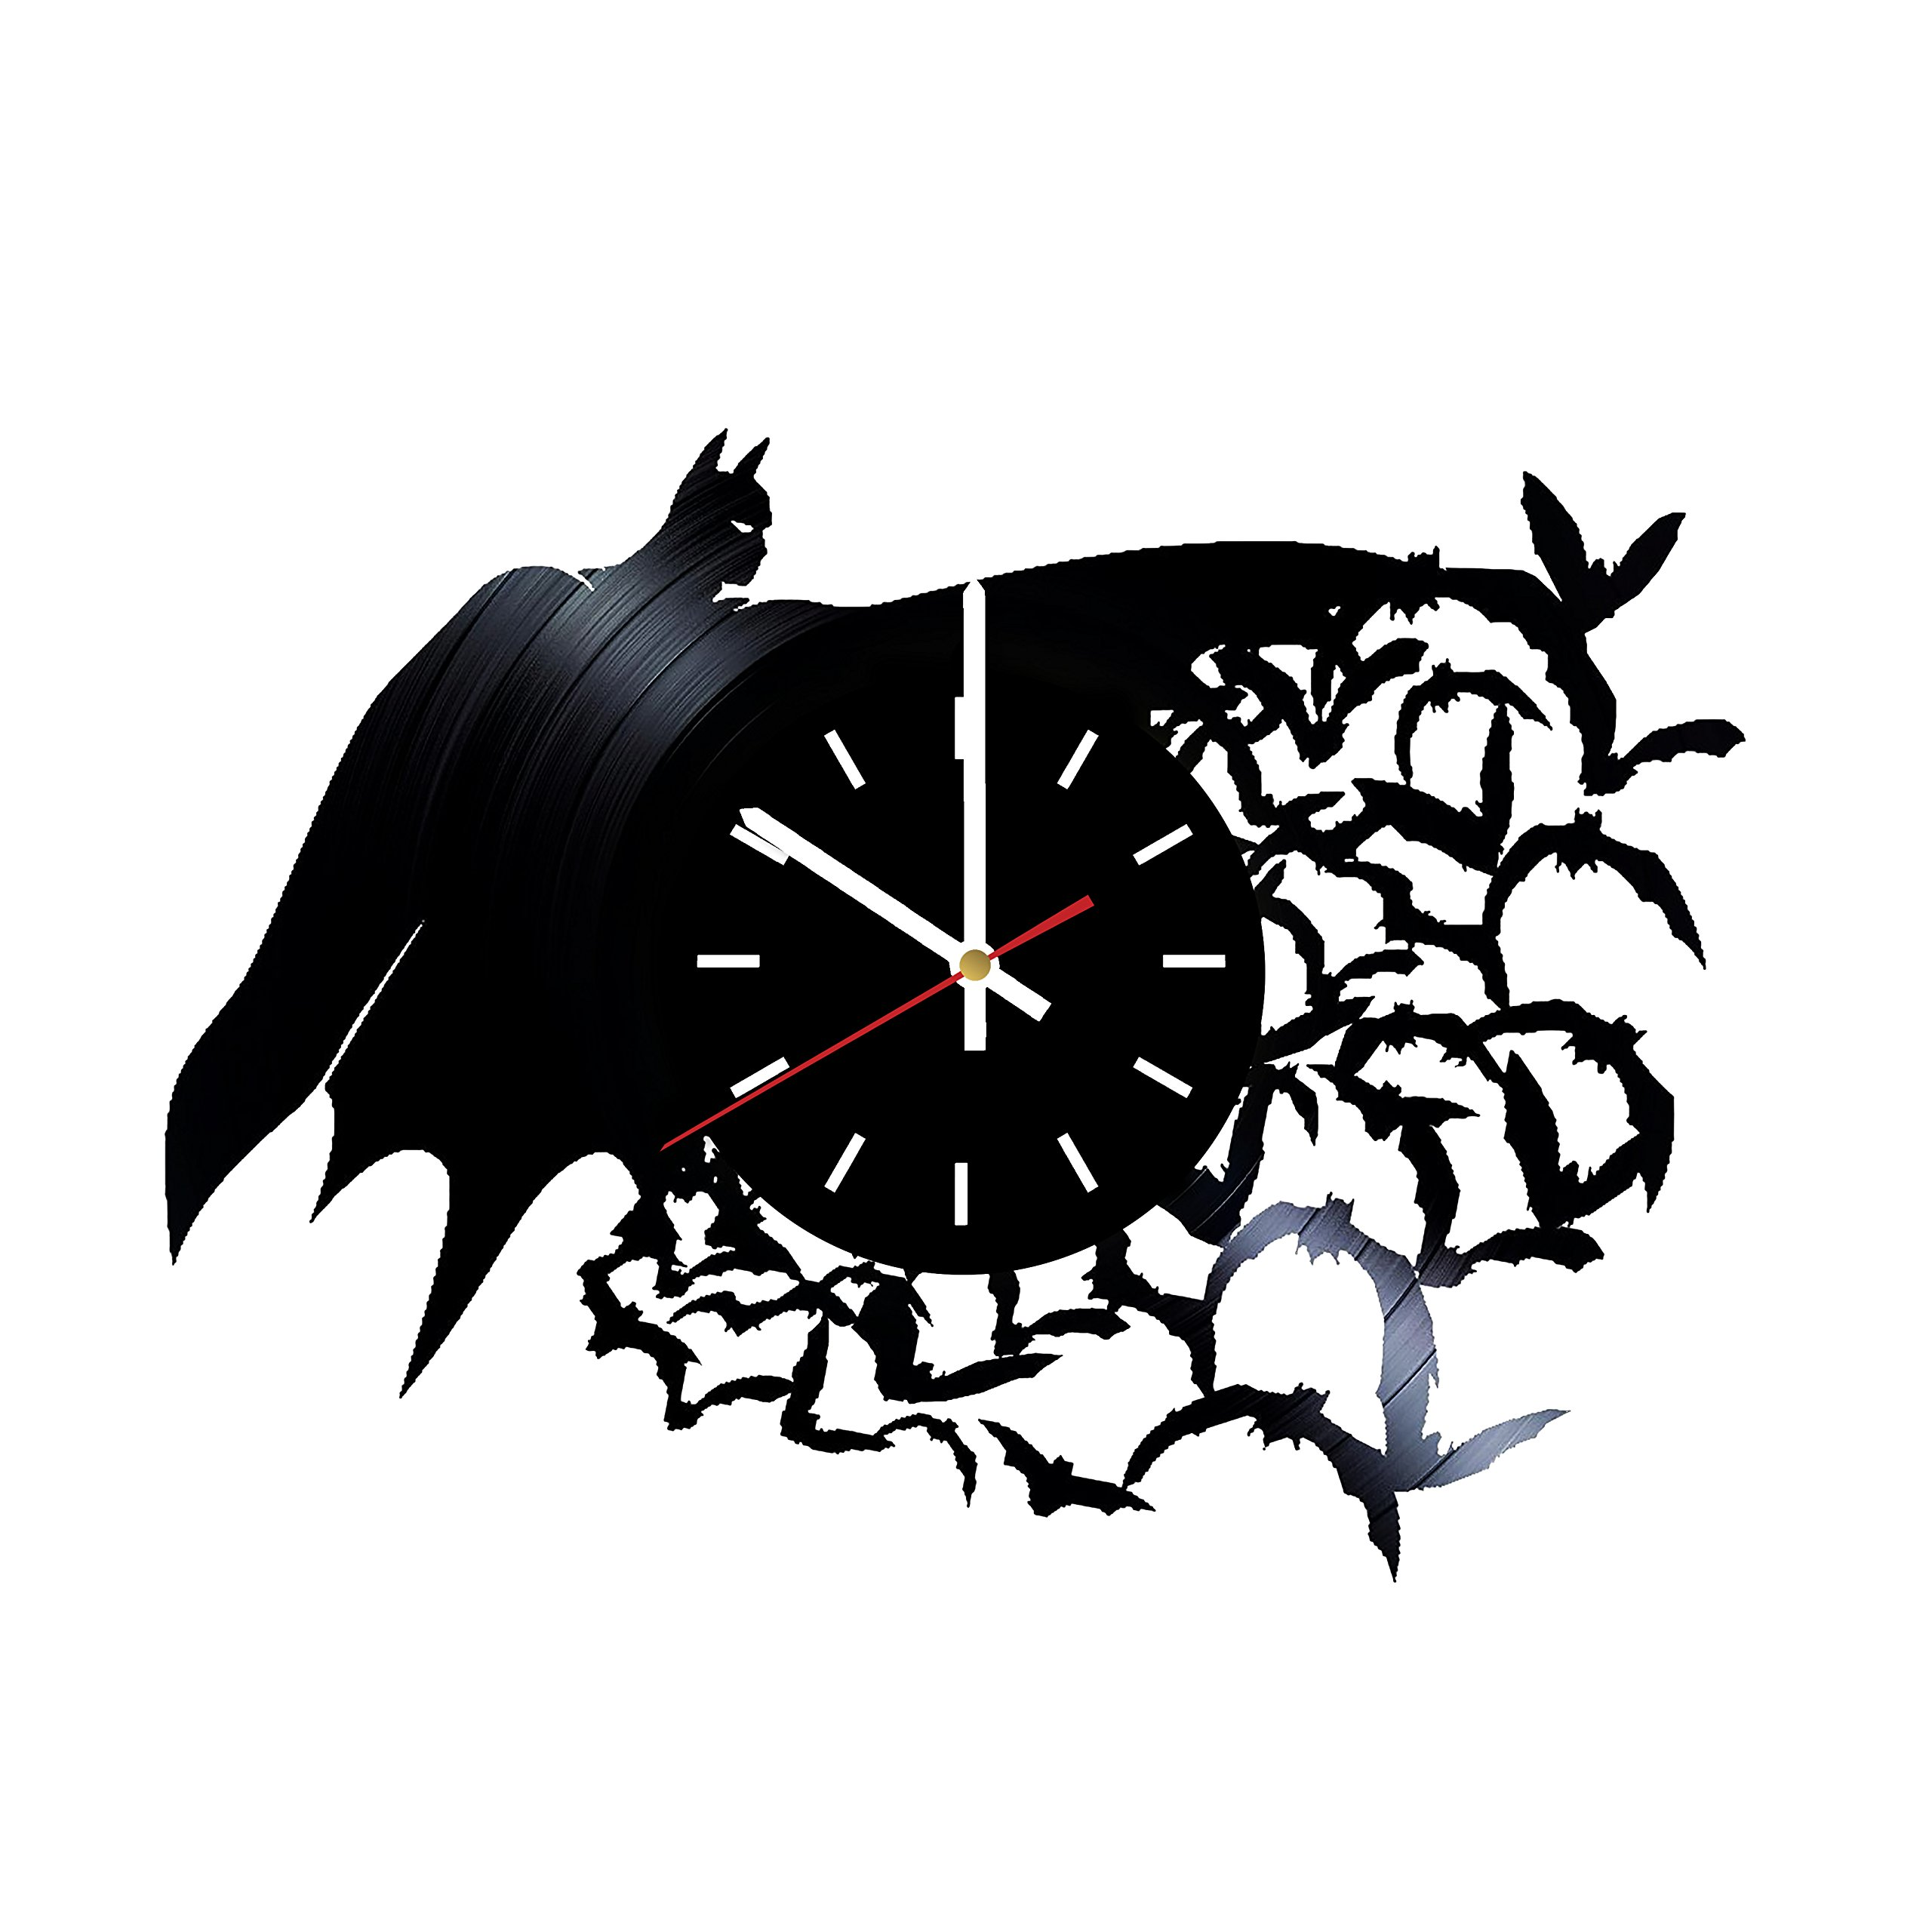 Everyday Arts Superhero Batman Design Vinyl Record Wall Clock - Get Unique Bedroom or Garage Wall Decor - Gift Ideas for Friends, Brother - Darth Vader Unique Modern Art